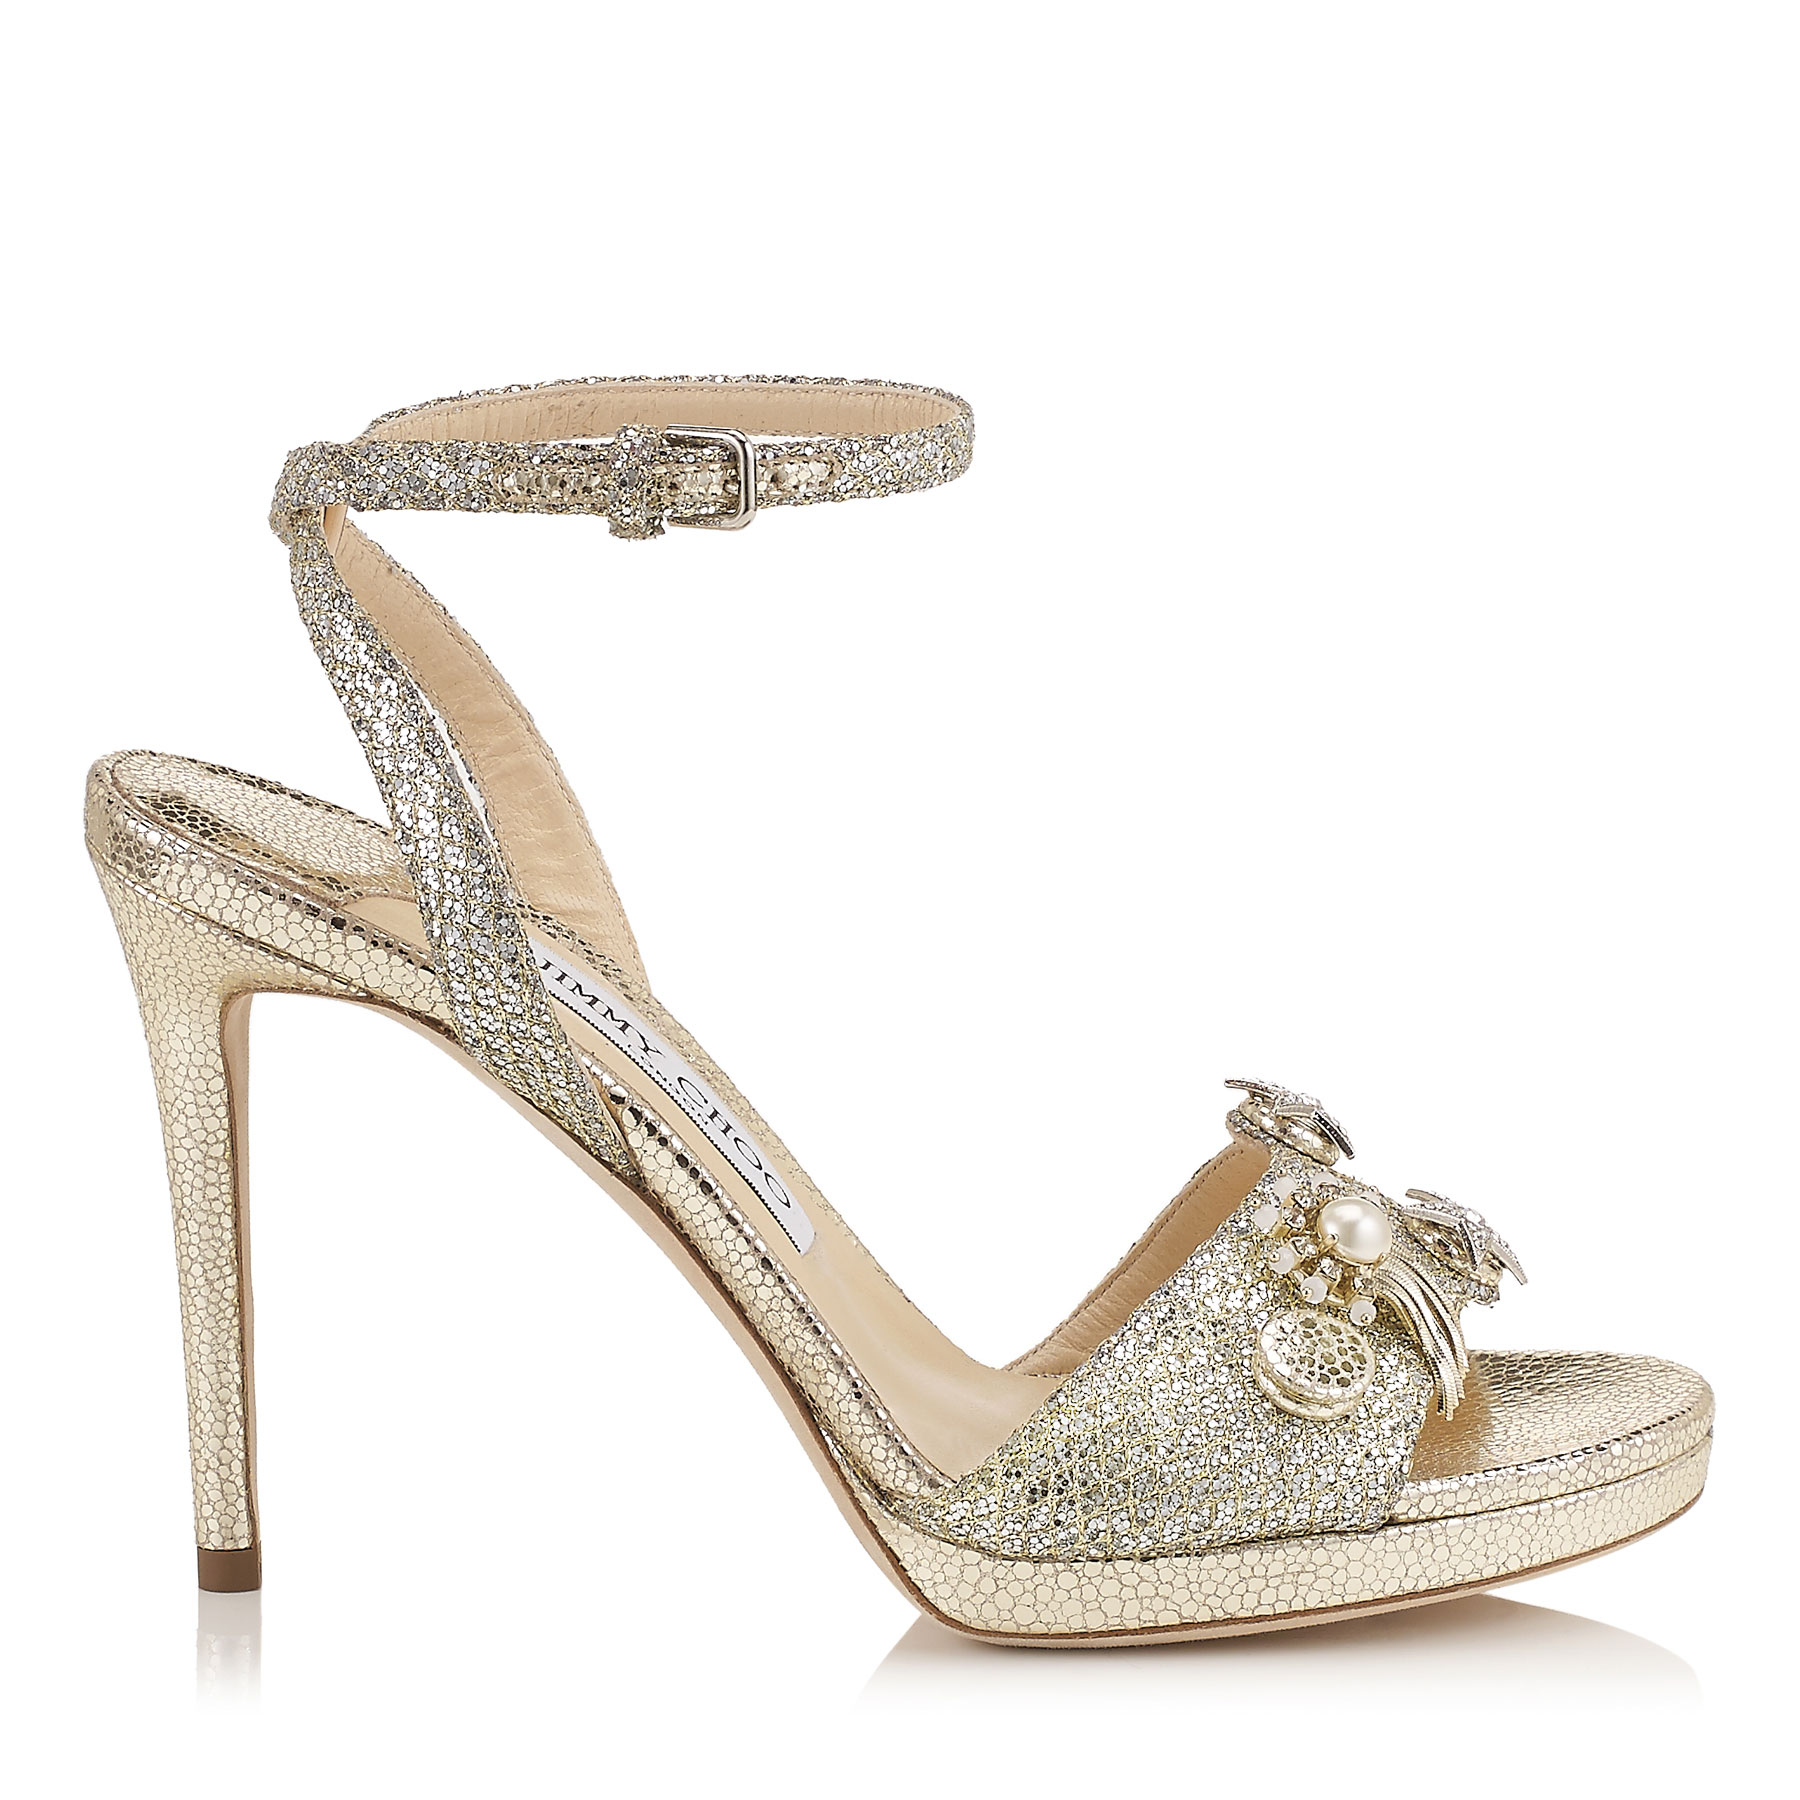 ELECTRA 100 Champagne Glitter Fabric Sandals with Jewelled Buttons